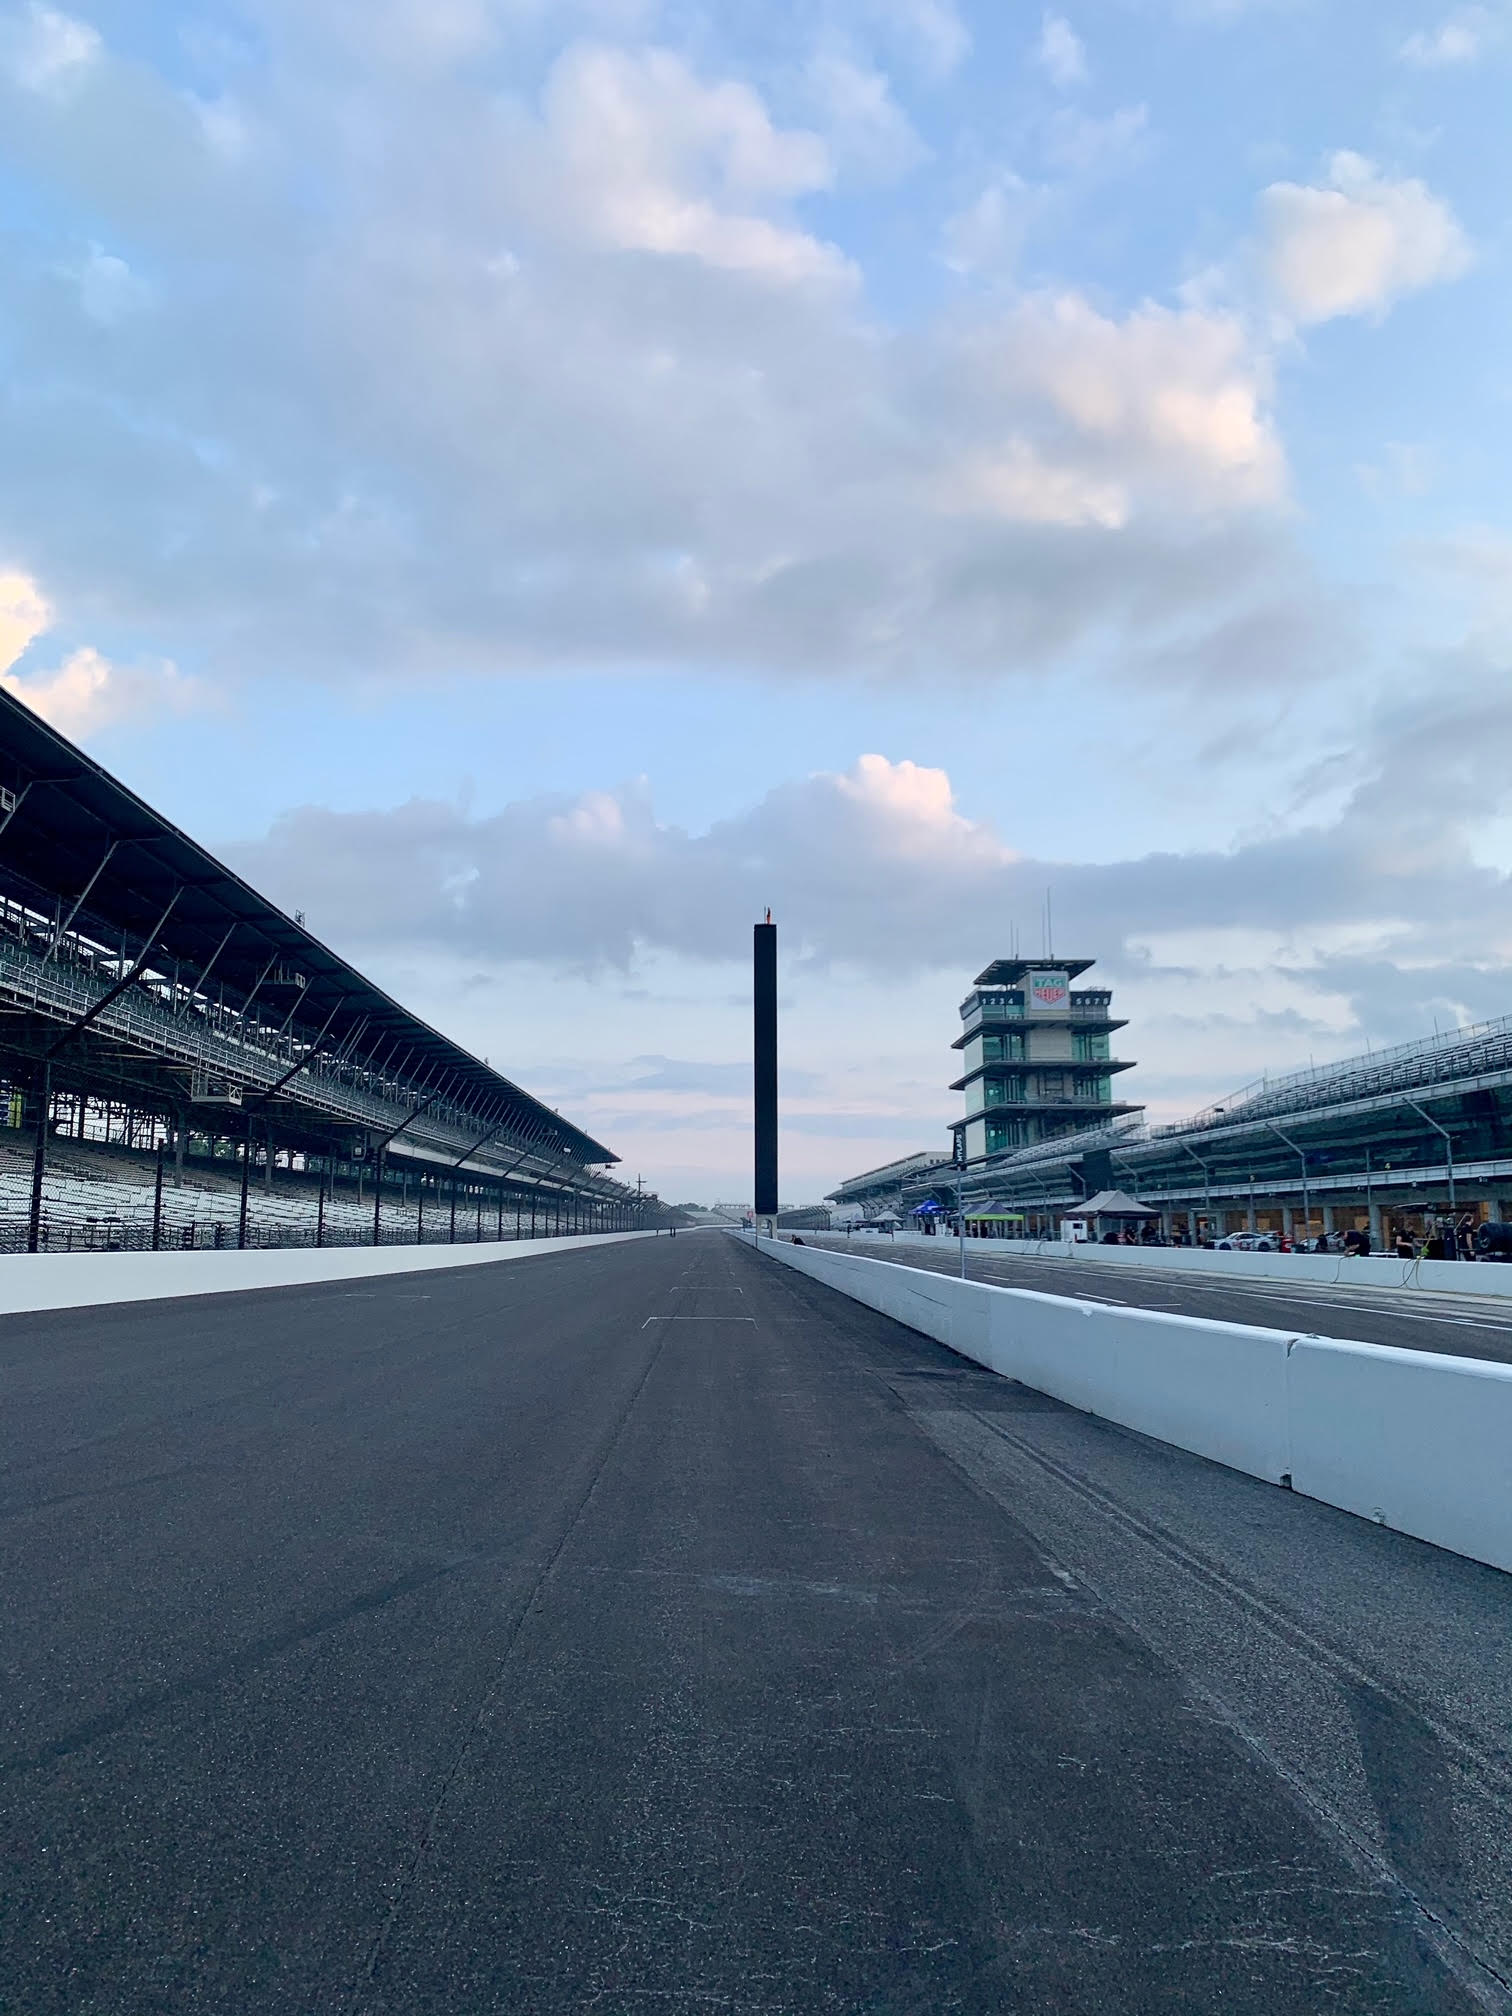 Trackwalks are always a key component to learning a new circuit. Doesn't get much better than this one, walking over the yard of bricks!